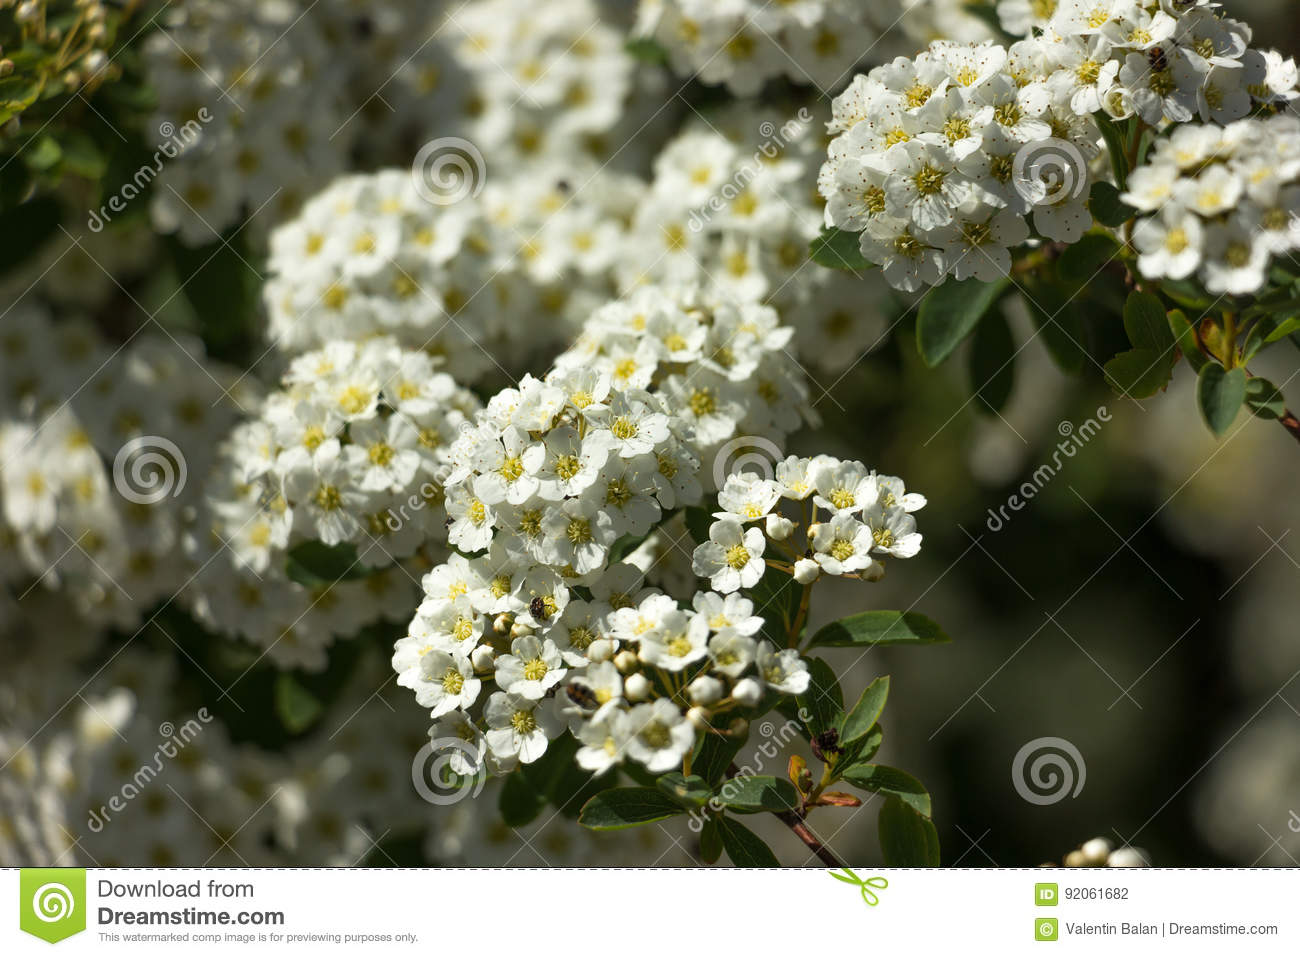 Small white flowers stock photo. Image of bouquet, garden - 92061682